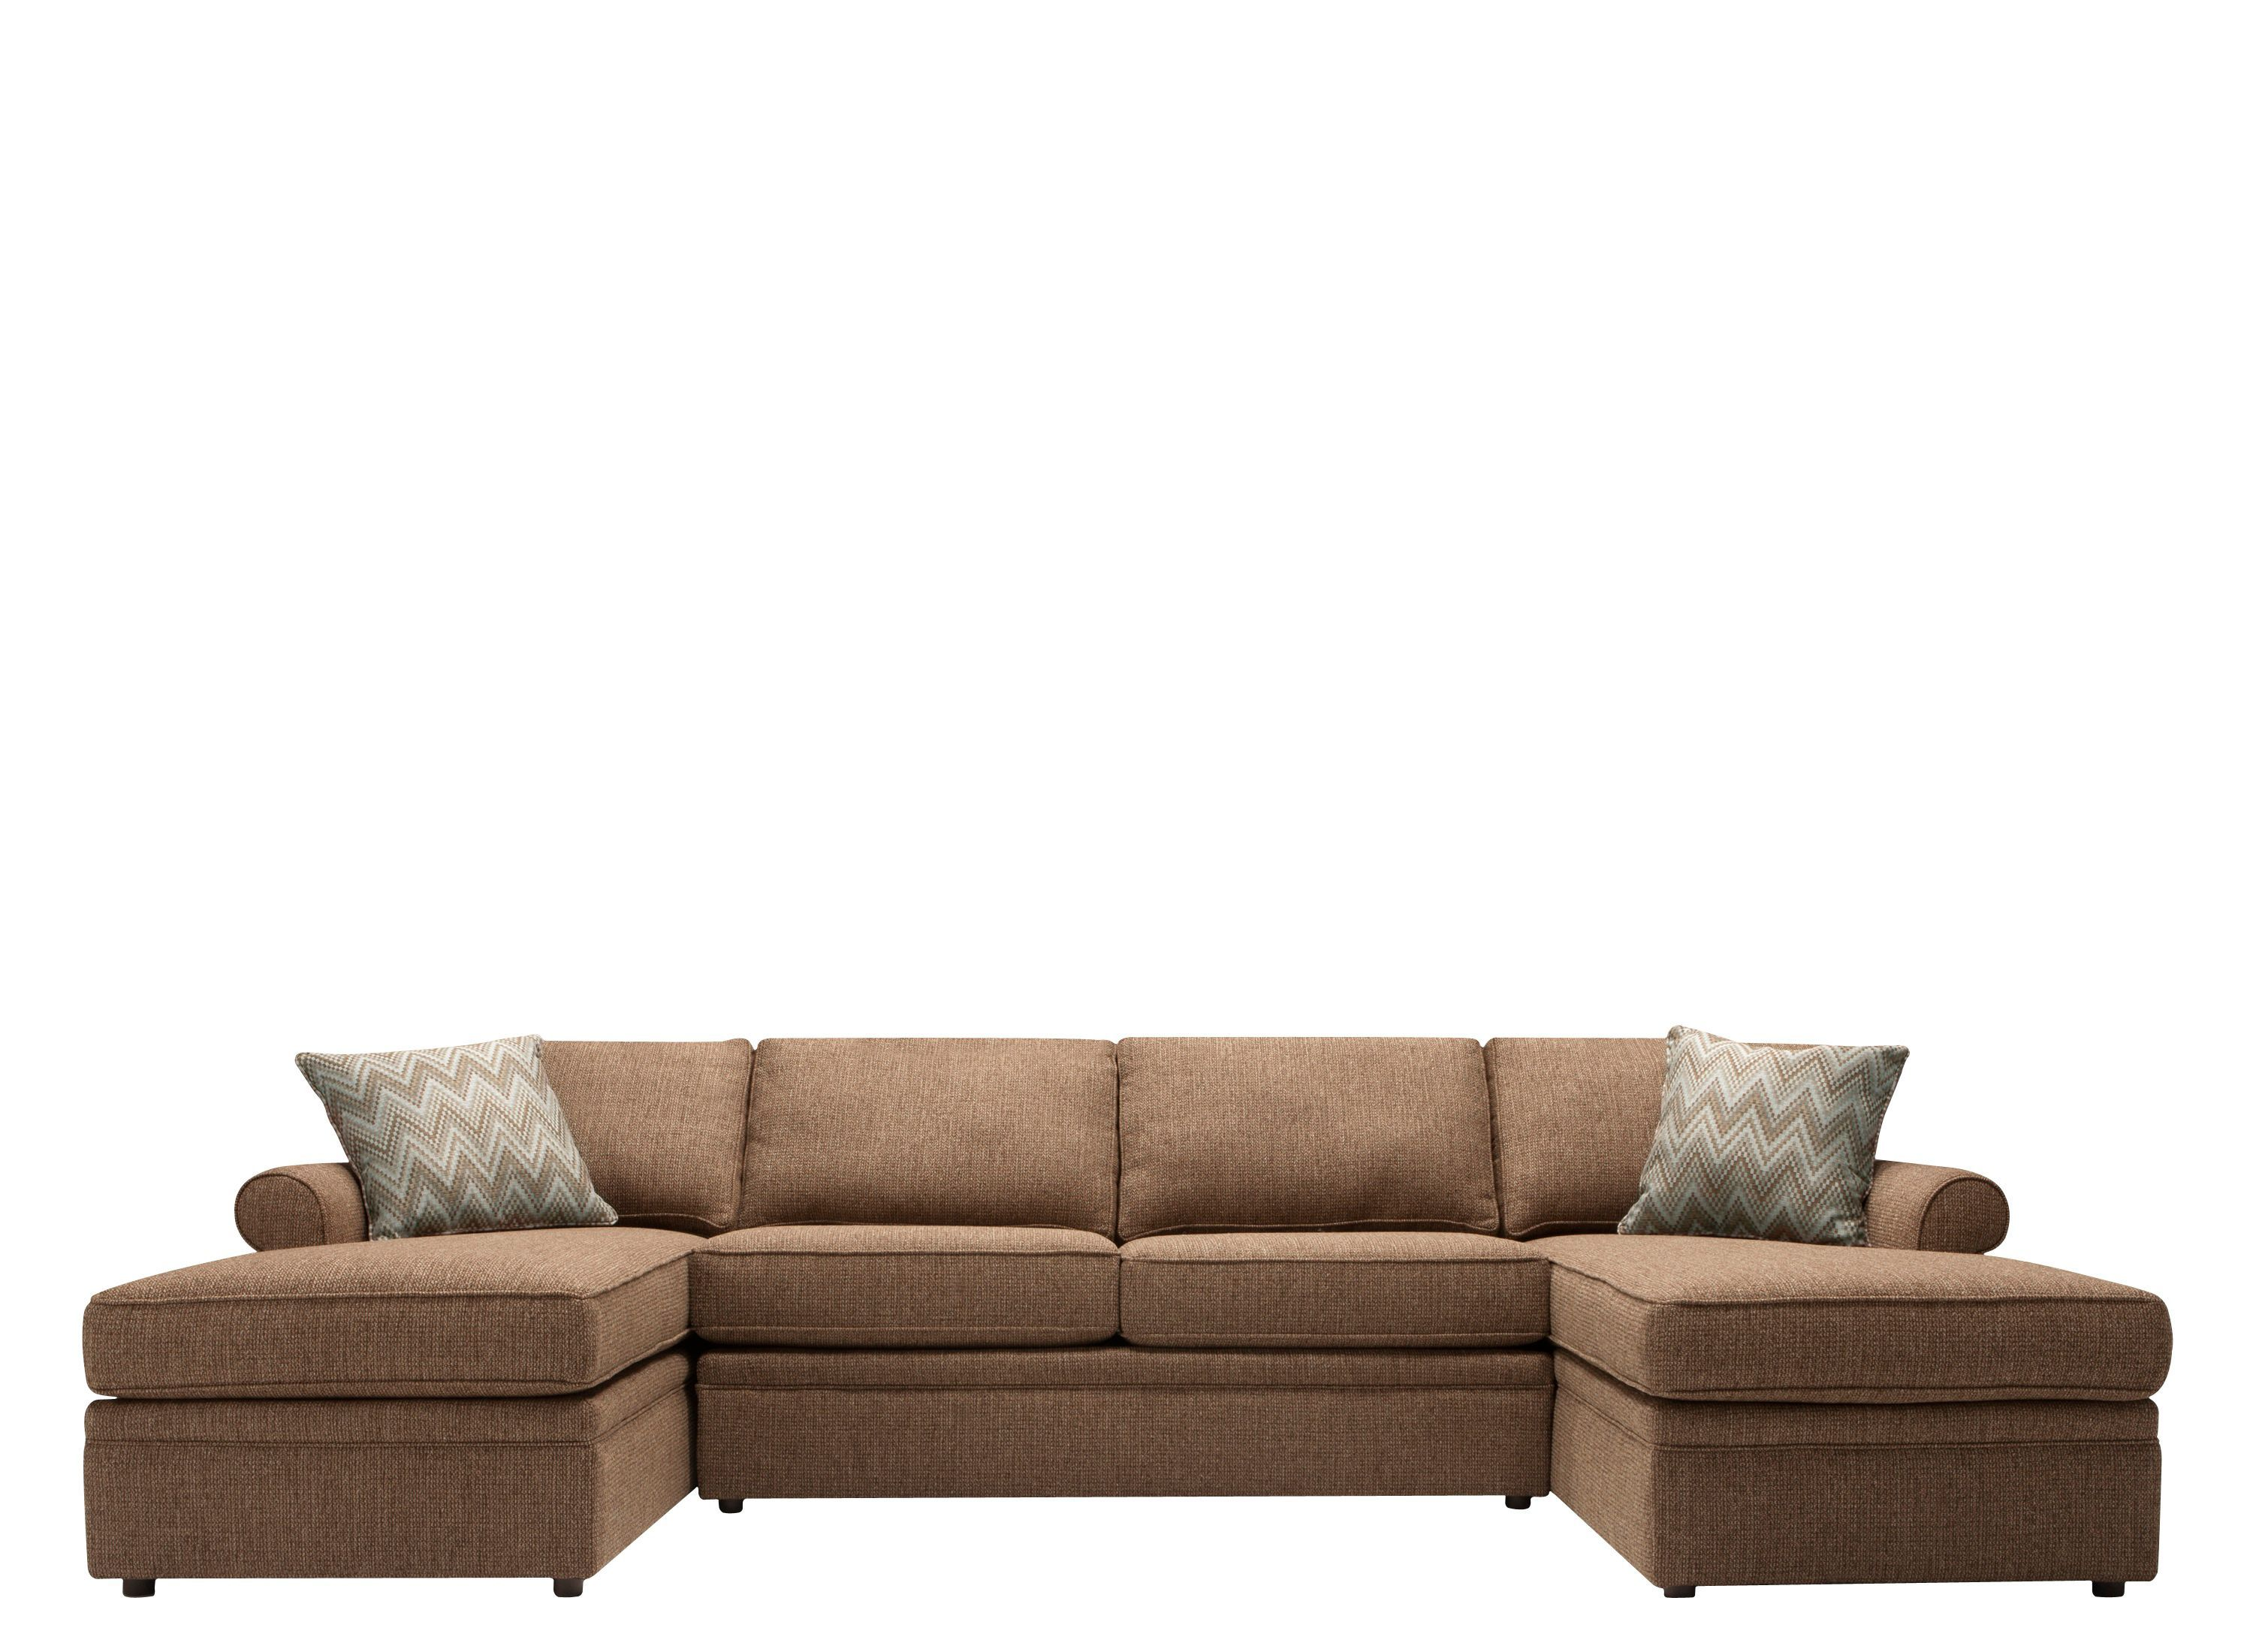 Bwood Ii Sectional Sofa A Striking Blend Of Old World Style And New